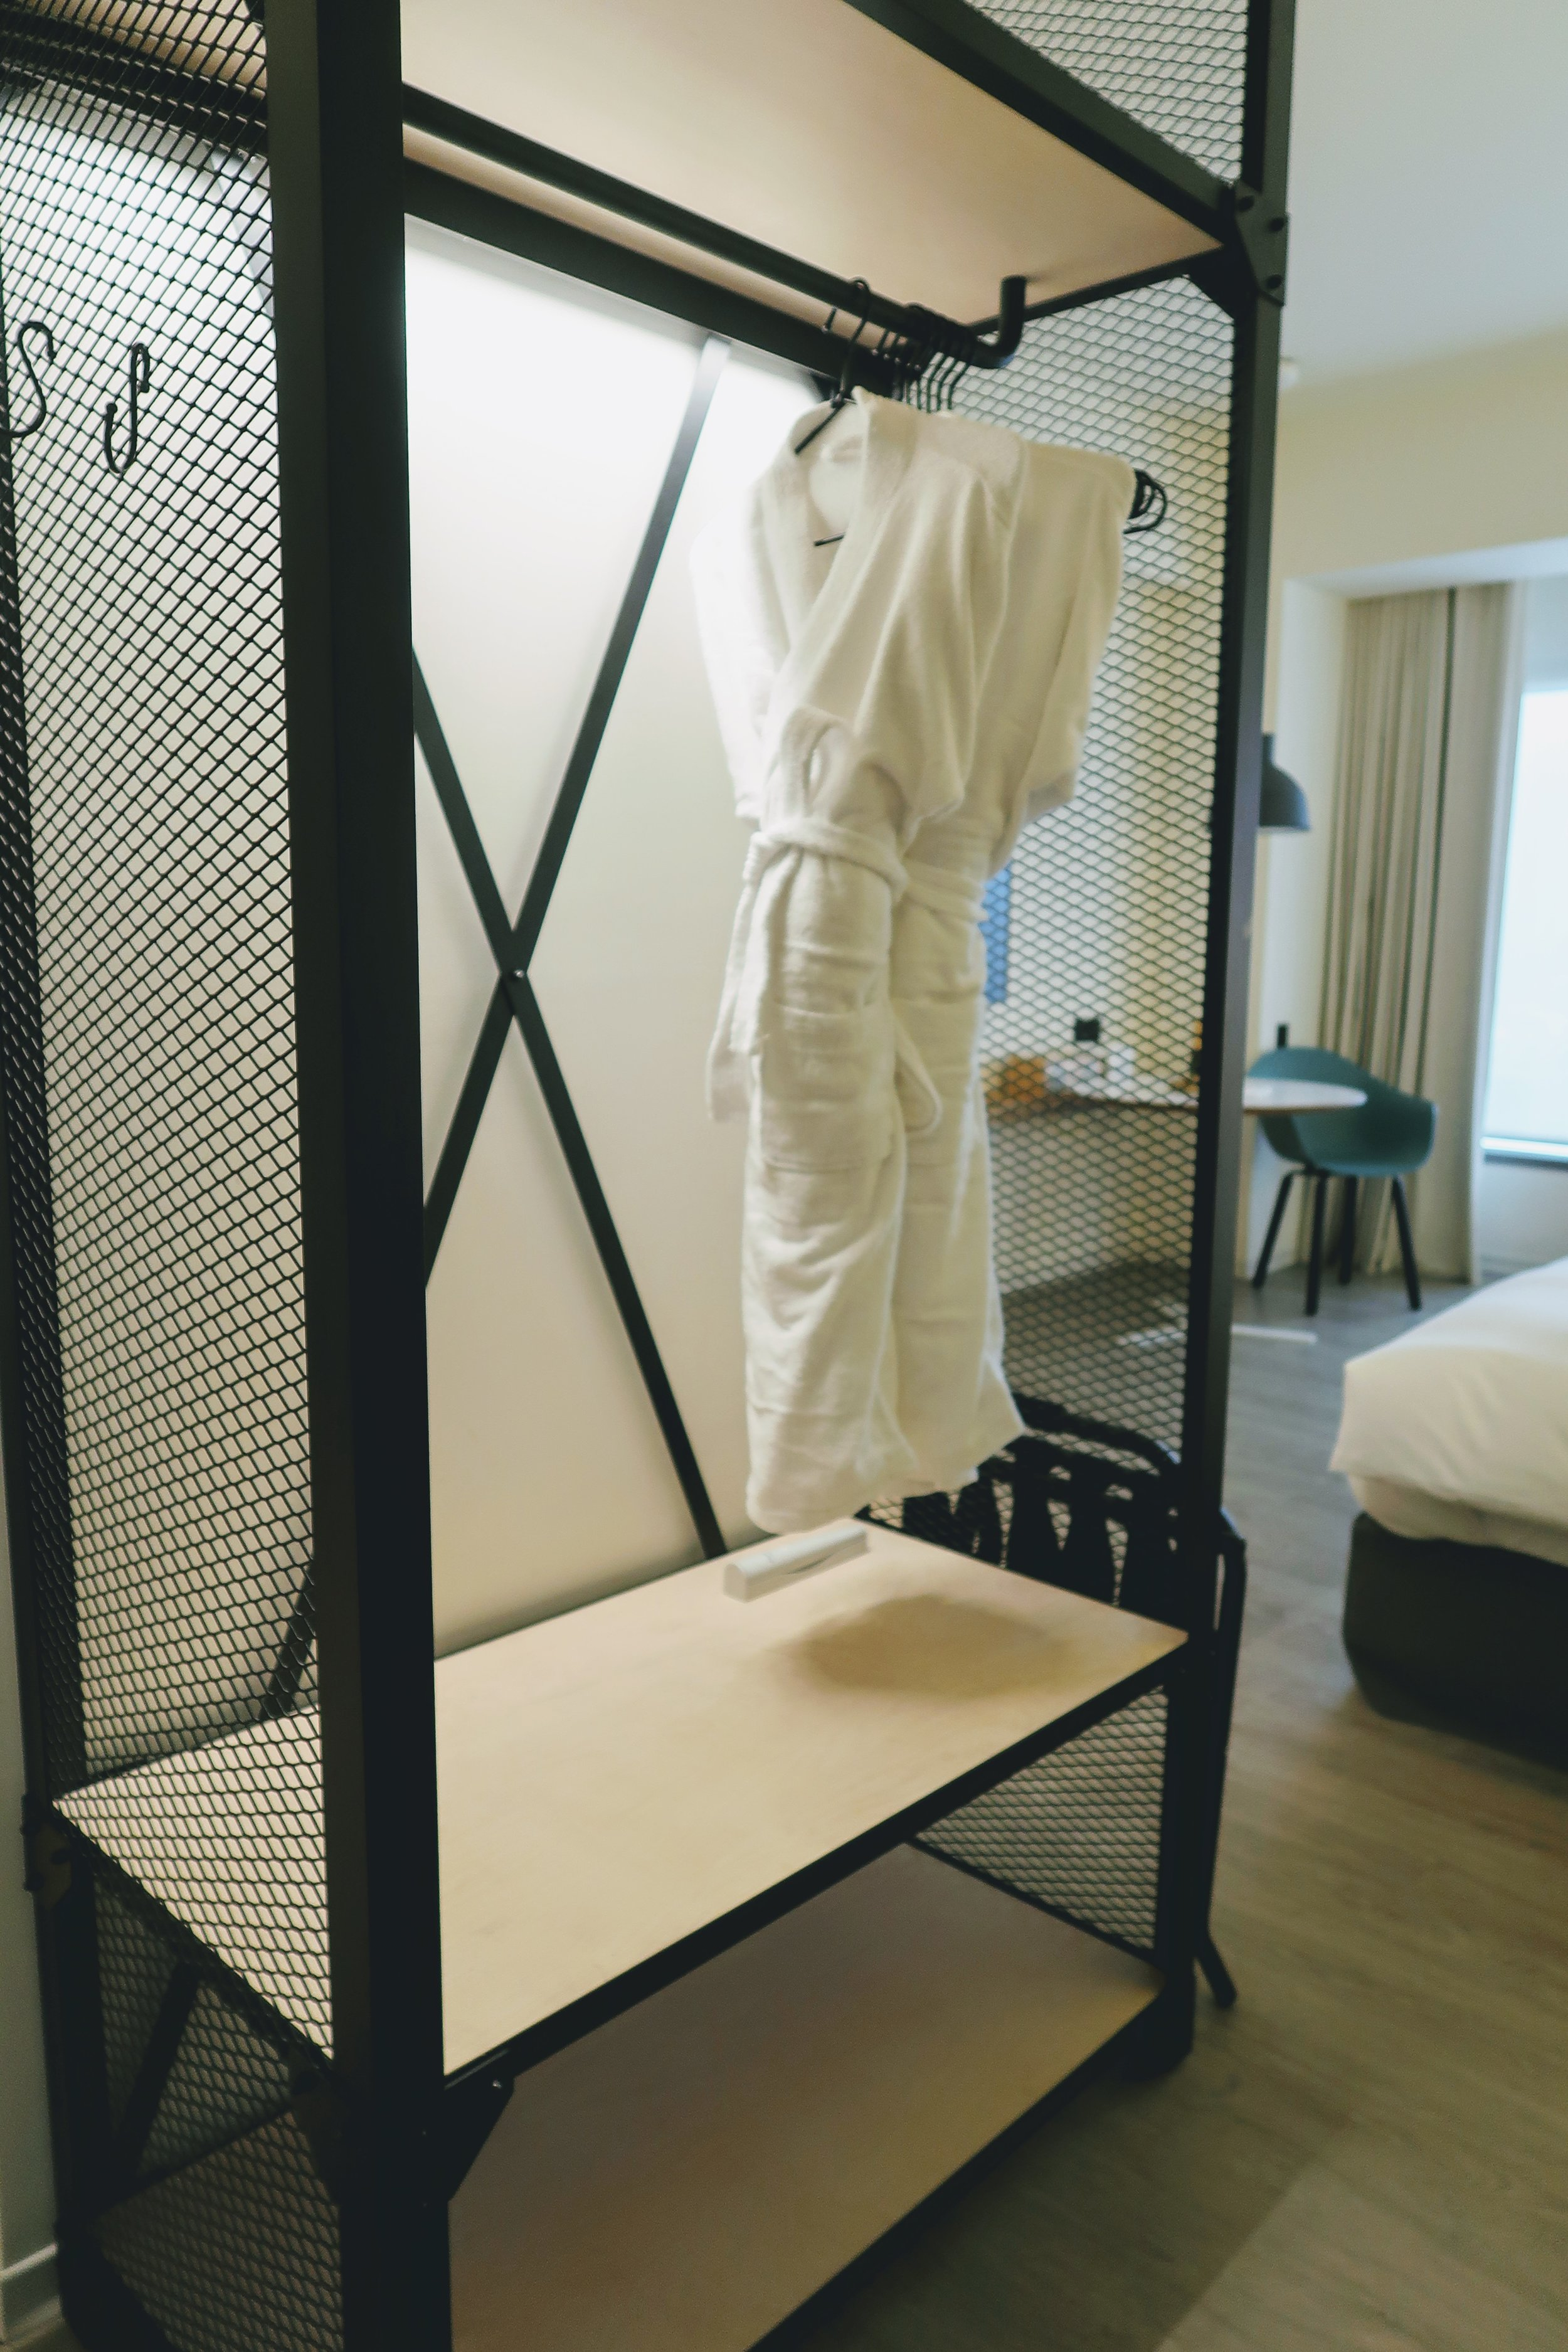 Open wardrobe concept, smart way of using space with a hint of industrial touch.